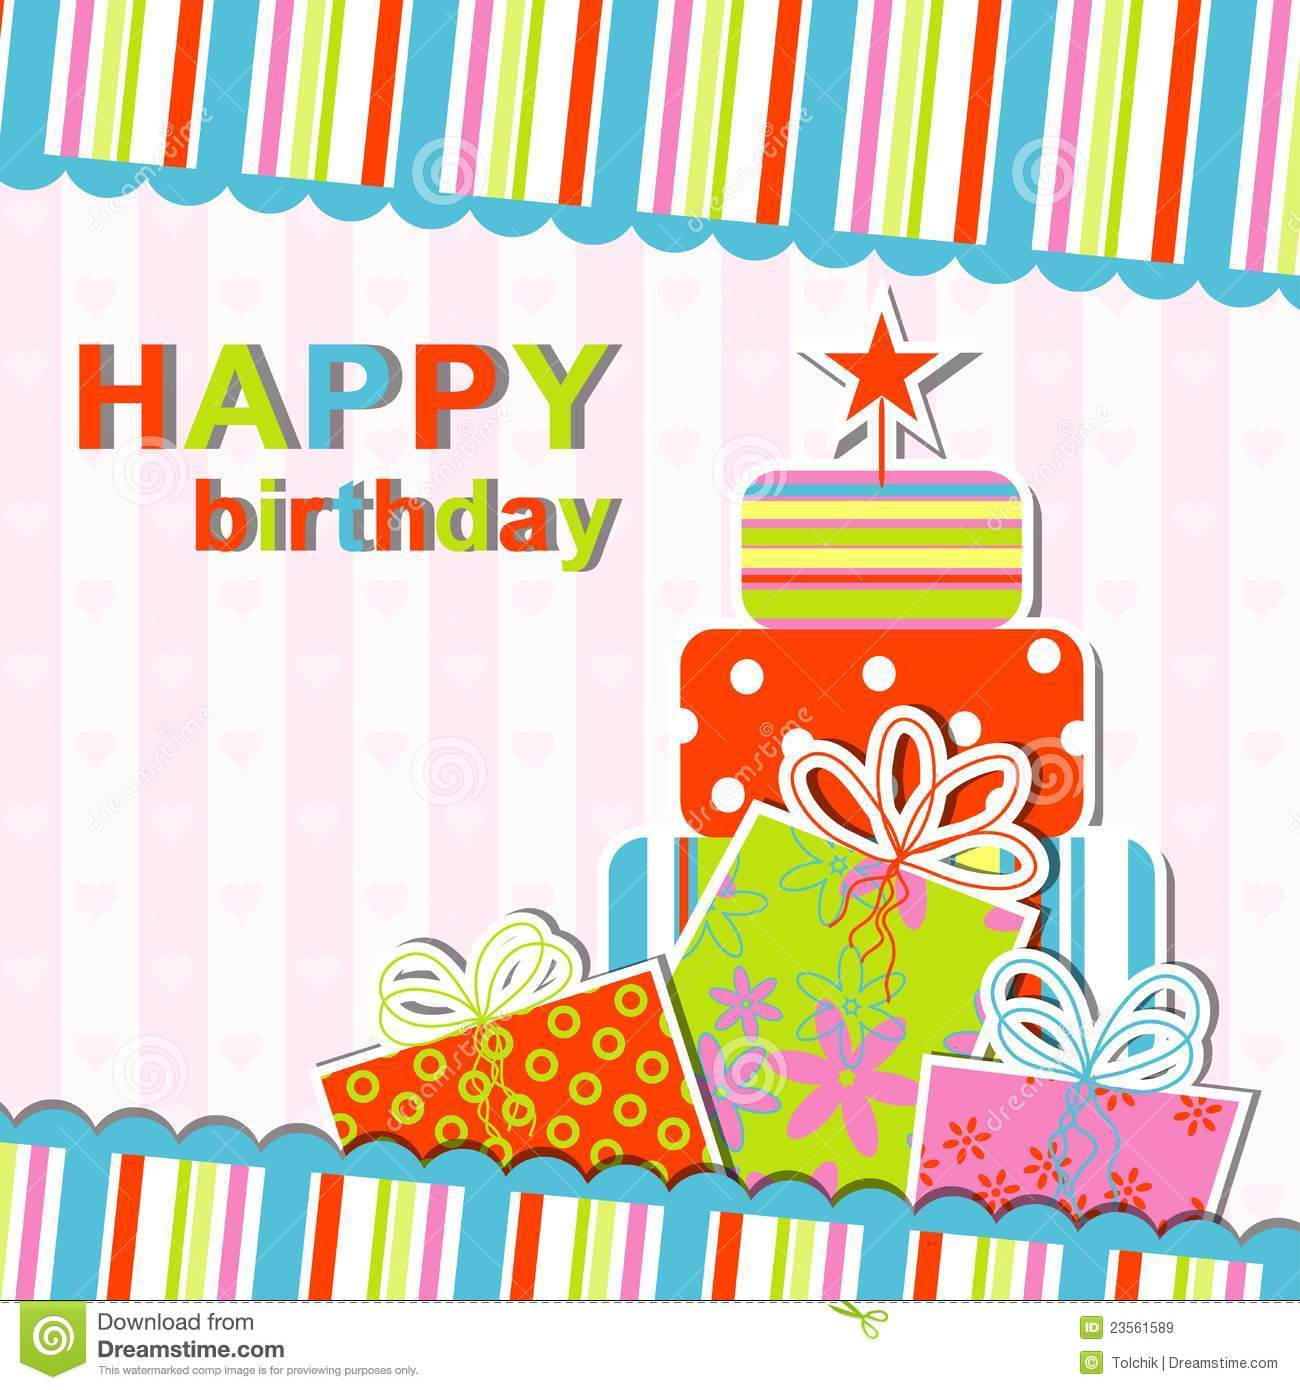 Template Greeting Card Royalty Free Stock Image: Template Birthday Greeting Card Royalty Free Stock Images